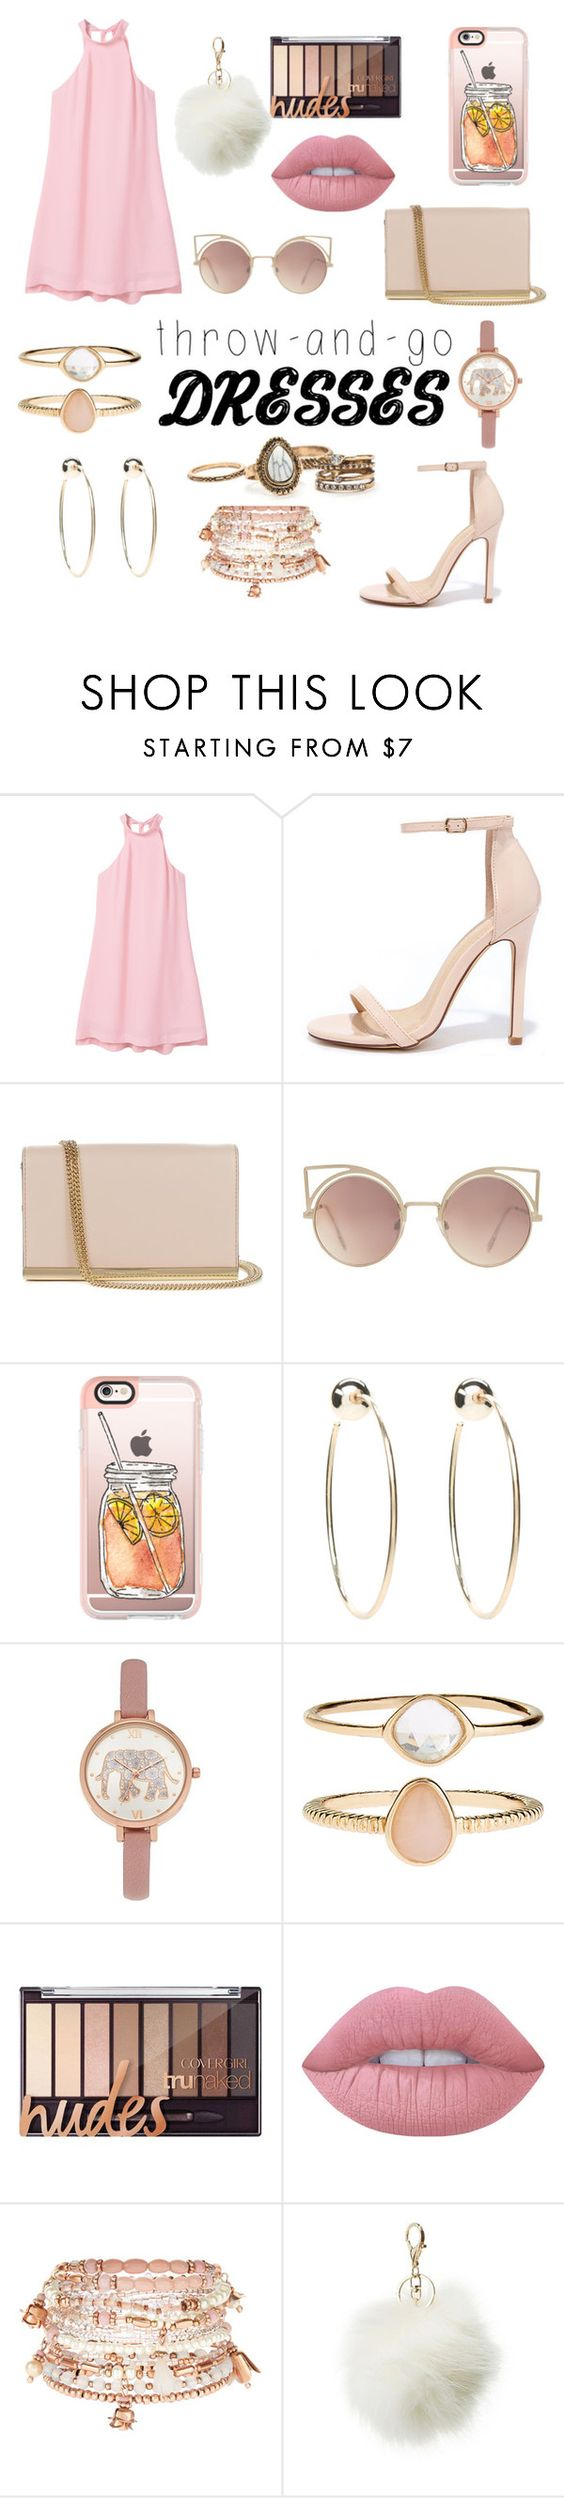 """""""Easy Casual Dress Combination"""" by seasonally ❤ liked on Polyvore featuring MANGO, Liliana, Diane Von Furstenberg, Casetify, Bebe, Accessorize, Lime Crime and Charlotte Russe"""